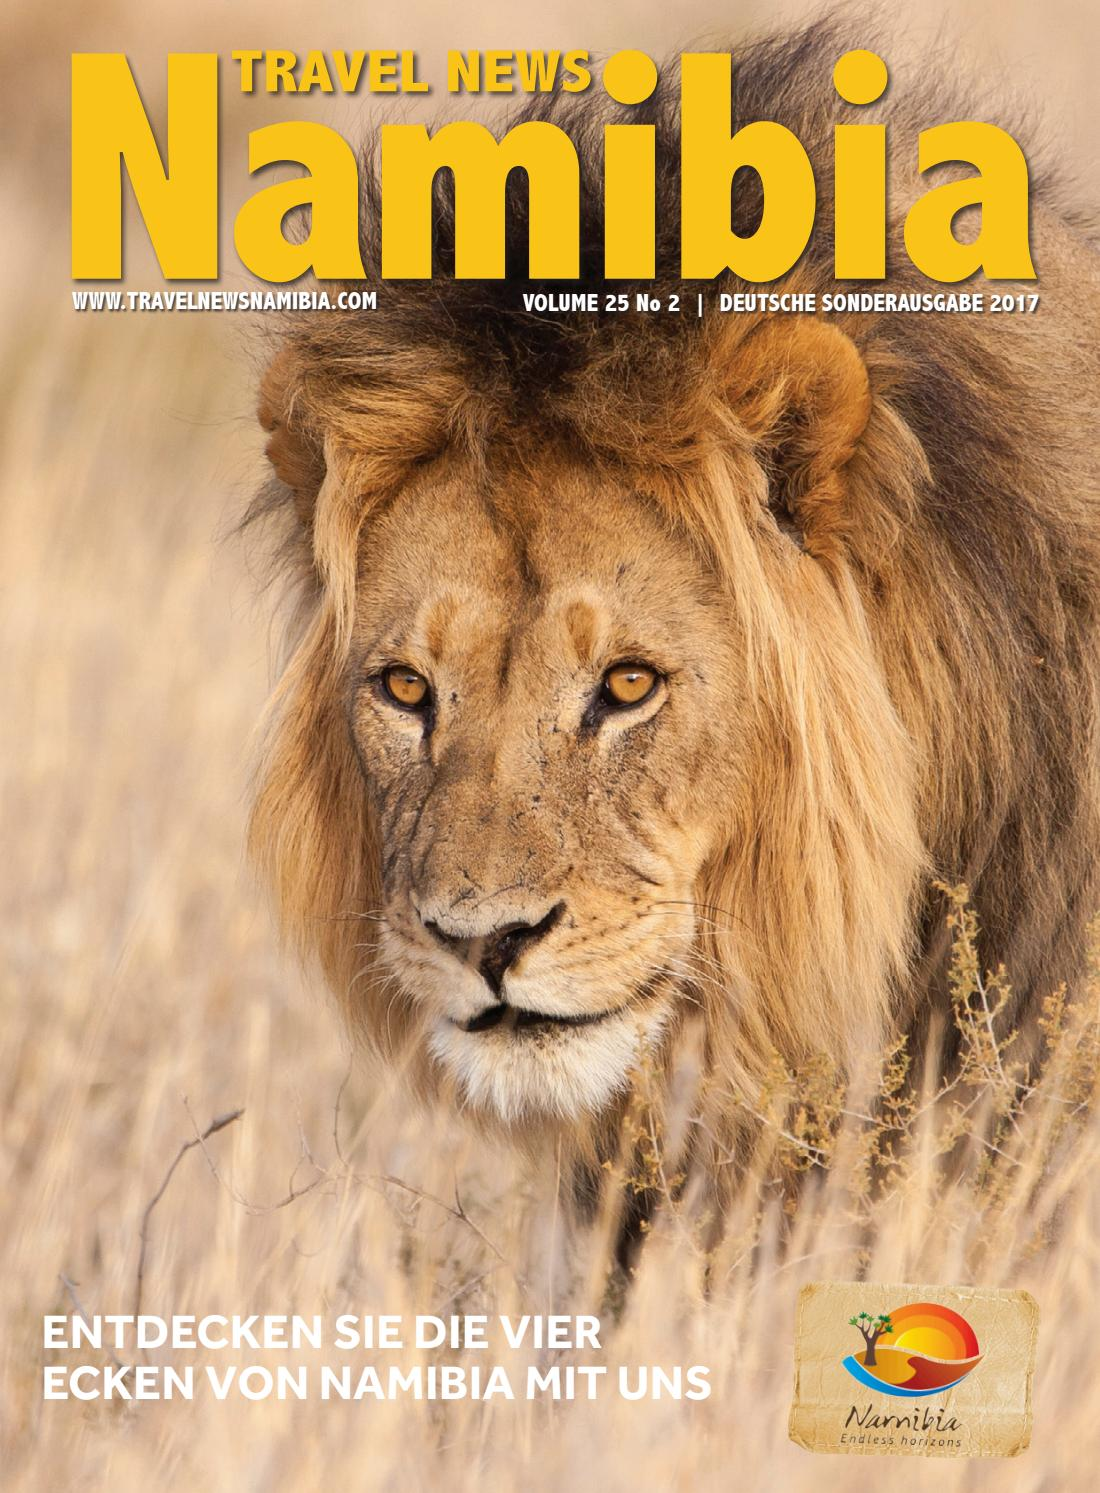 Travel News Namibia German 2017 By Venture Media Issuu